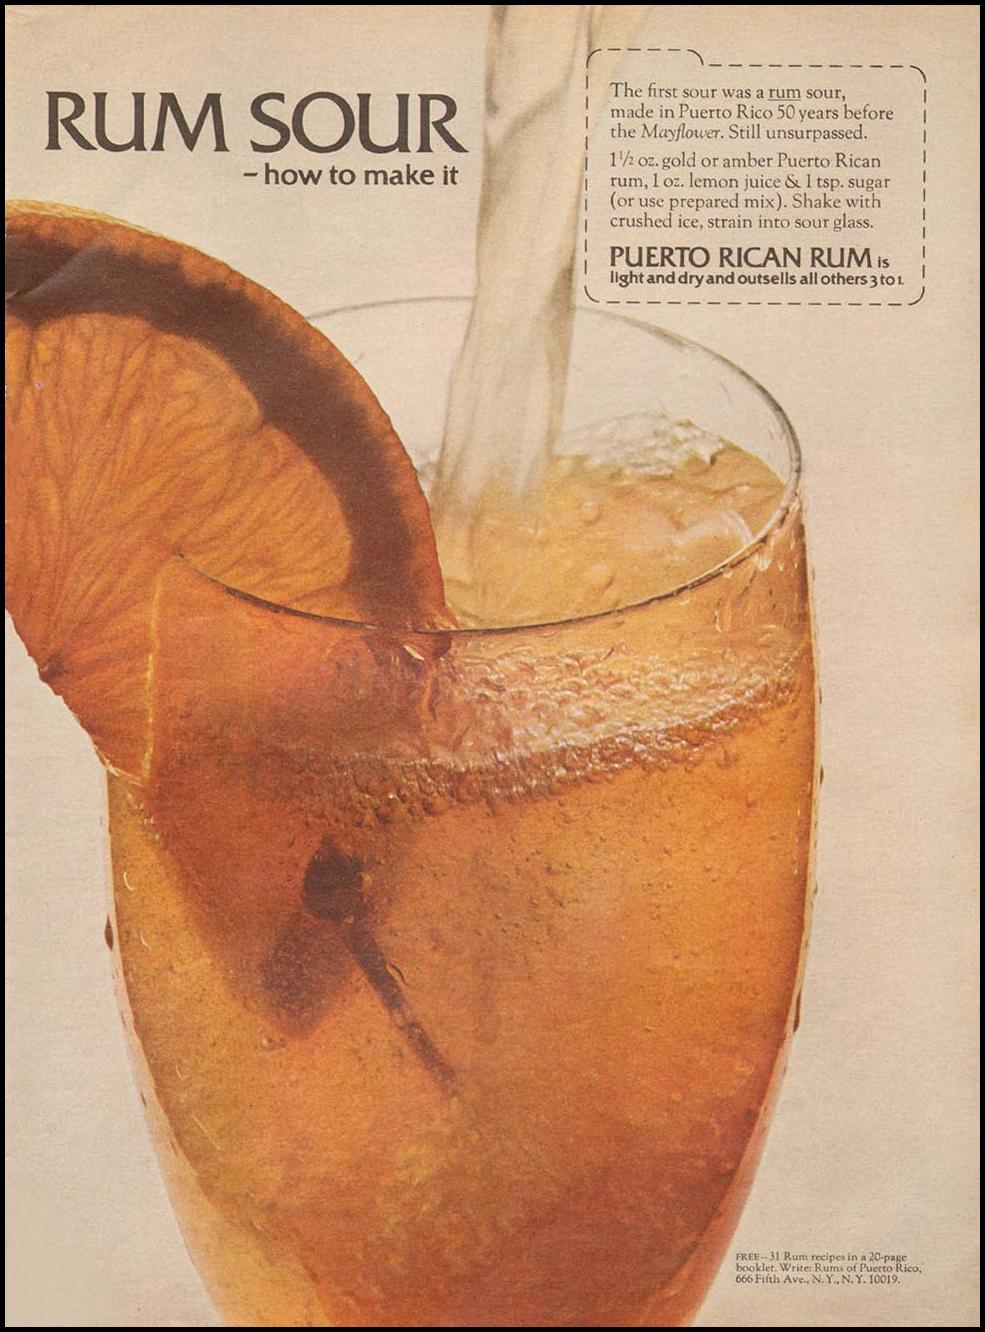 RUMS OF PUERTO RICO NEWSWEEK 05/20/1968